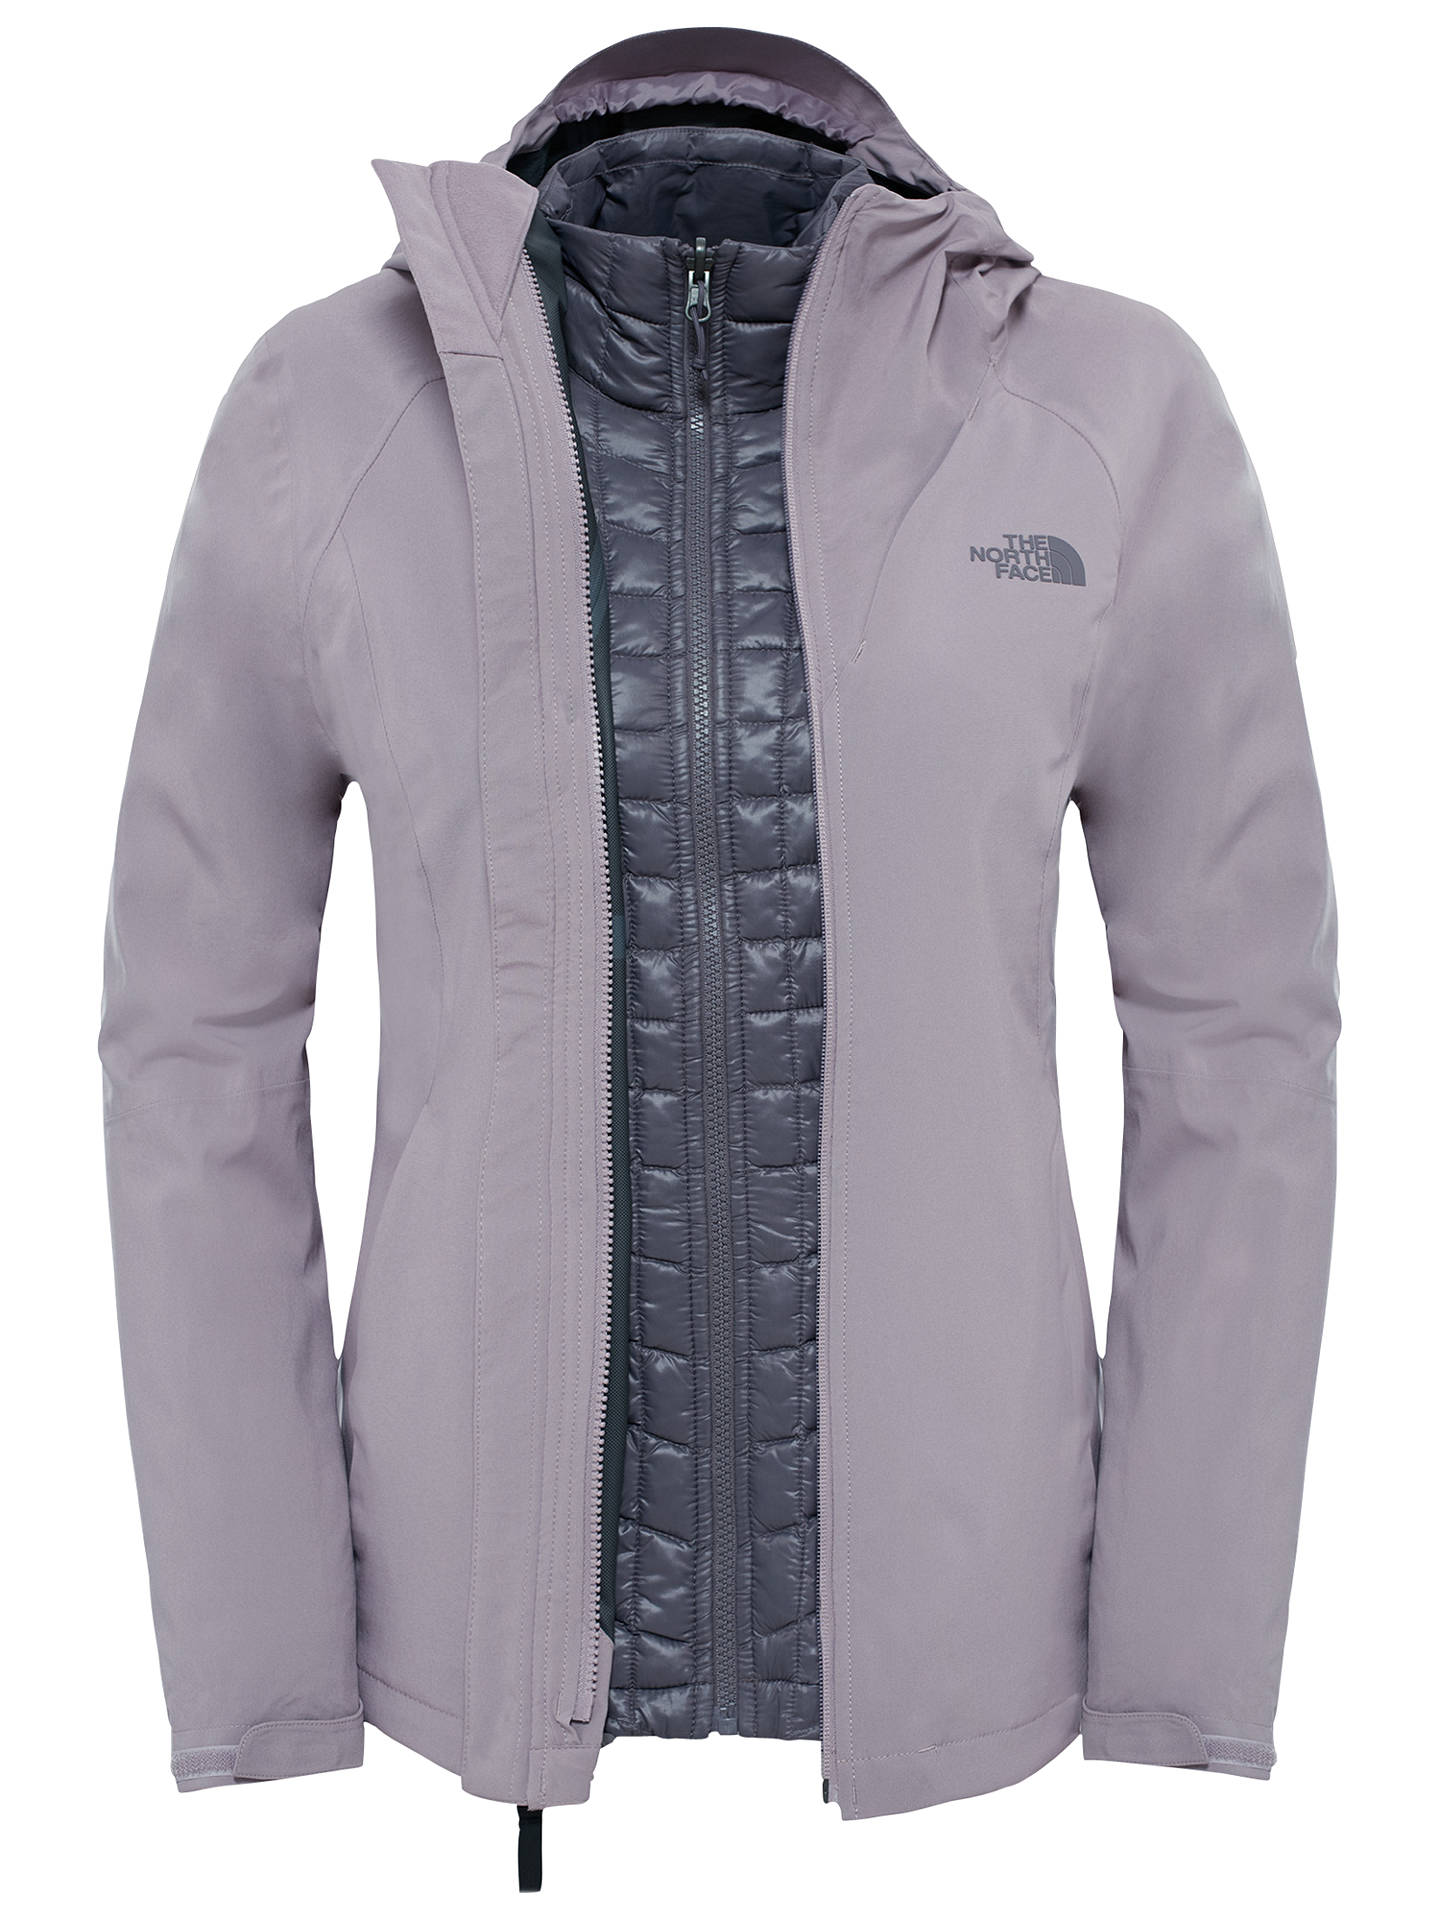 fa769b2fa The North Face Thermoball Triclimate 3-in-1 Insulated Waterproof ...